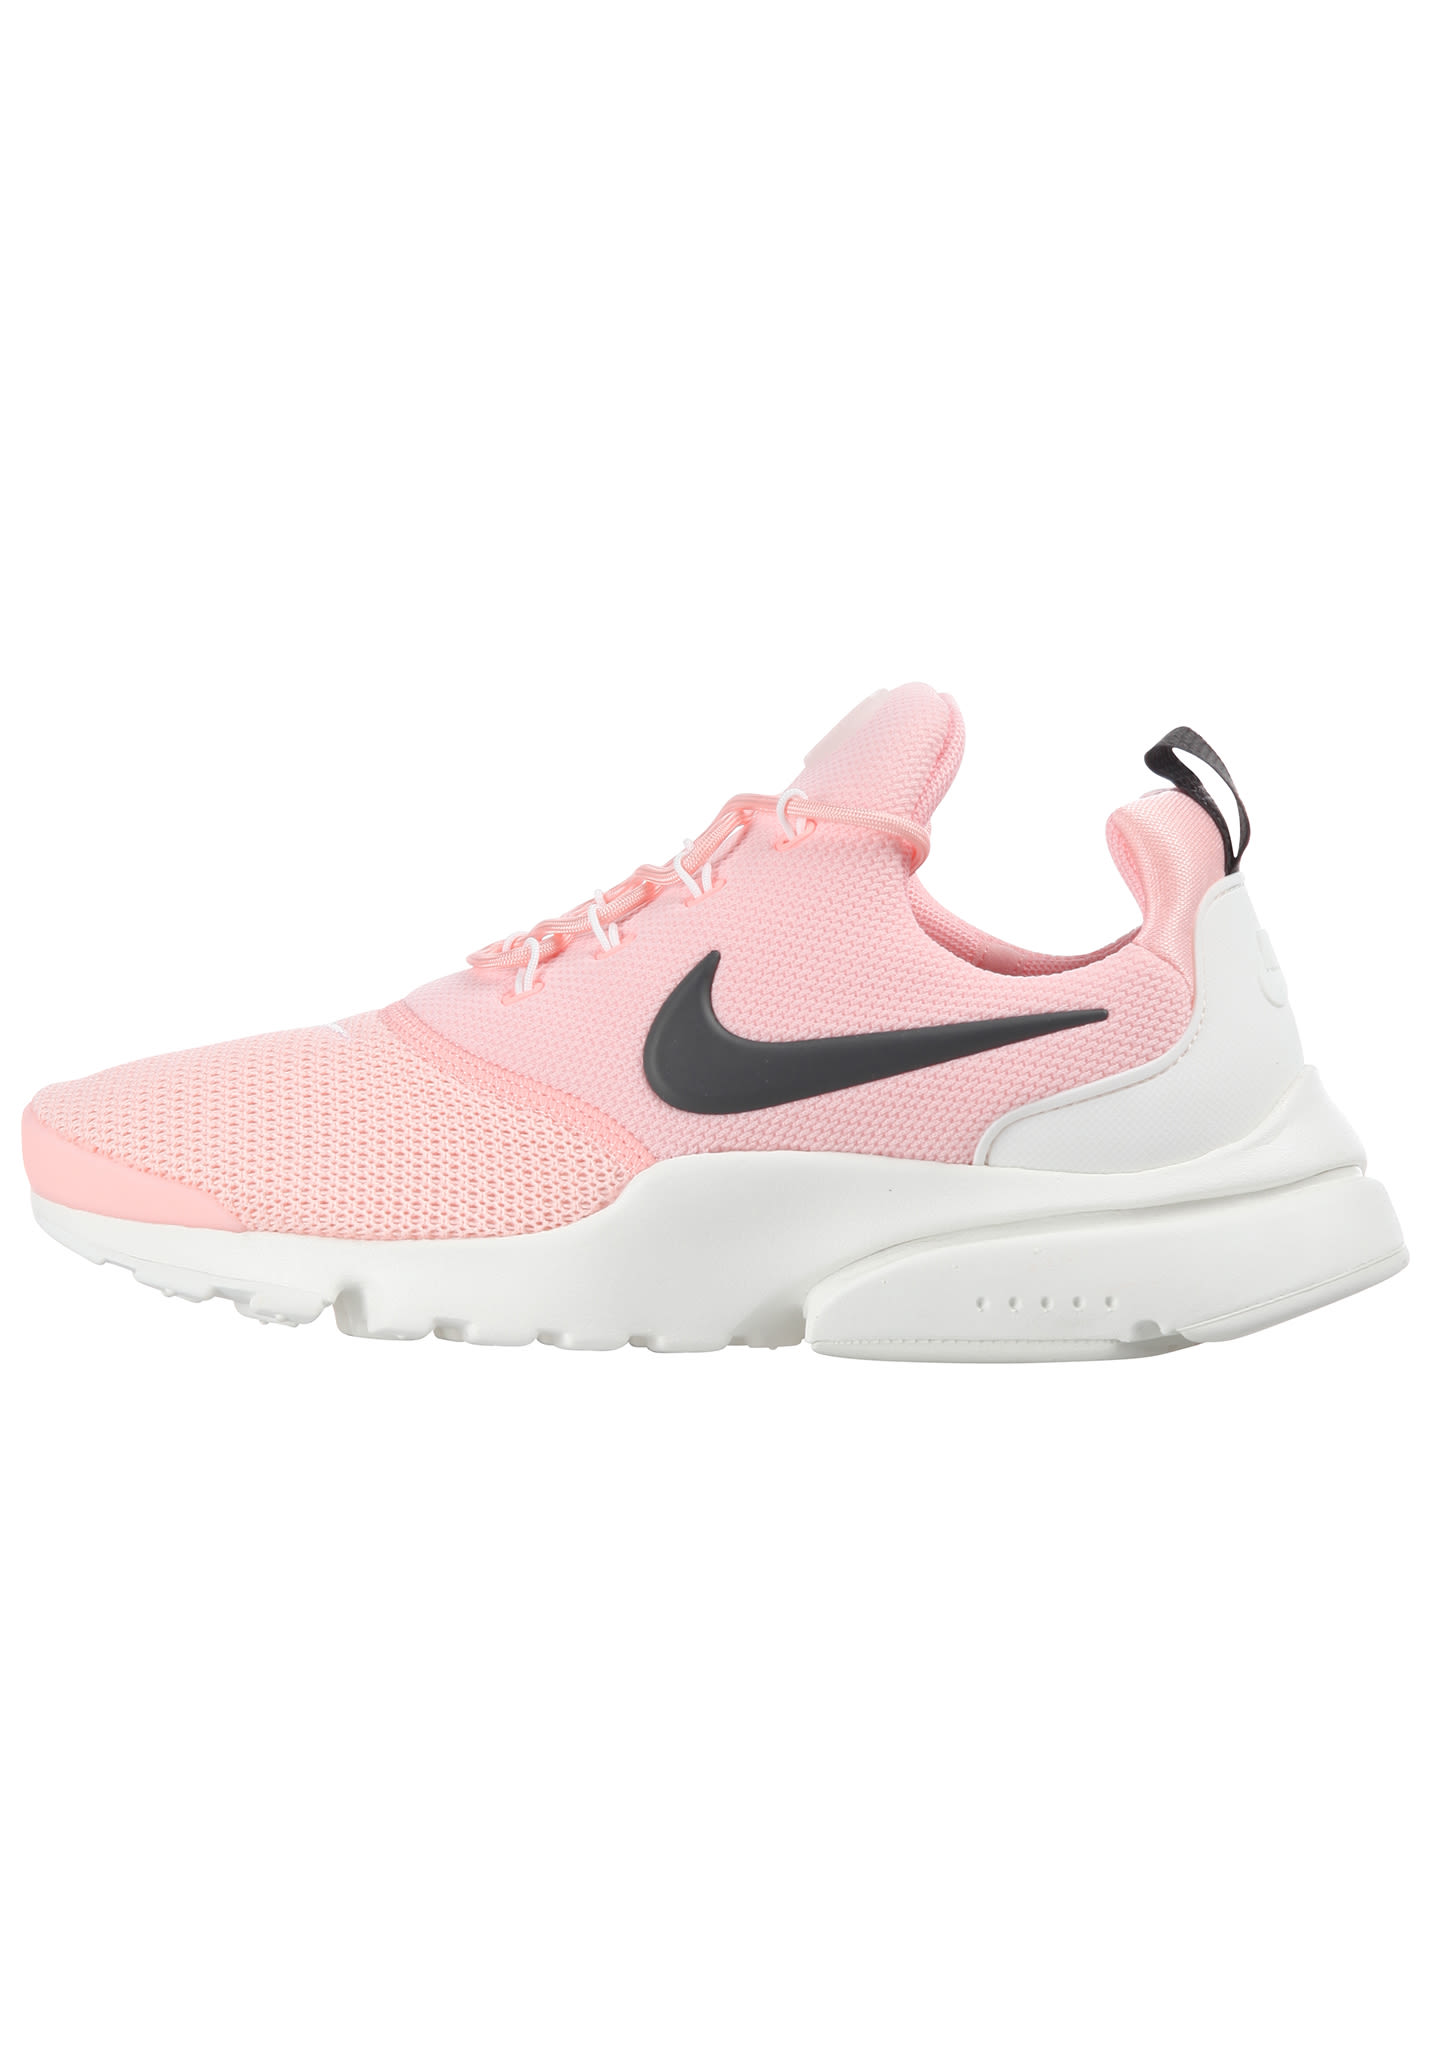 NIKE SPORTSWEAR Presto Fly - Sneakers for Women - Pink - Planet Sports f46b1ac8ab